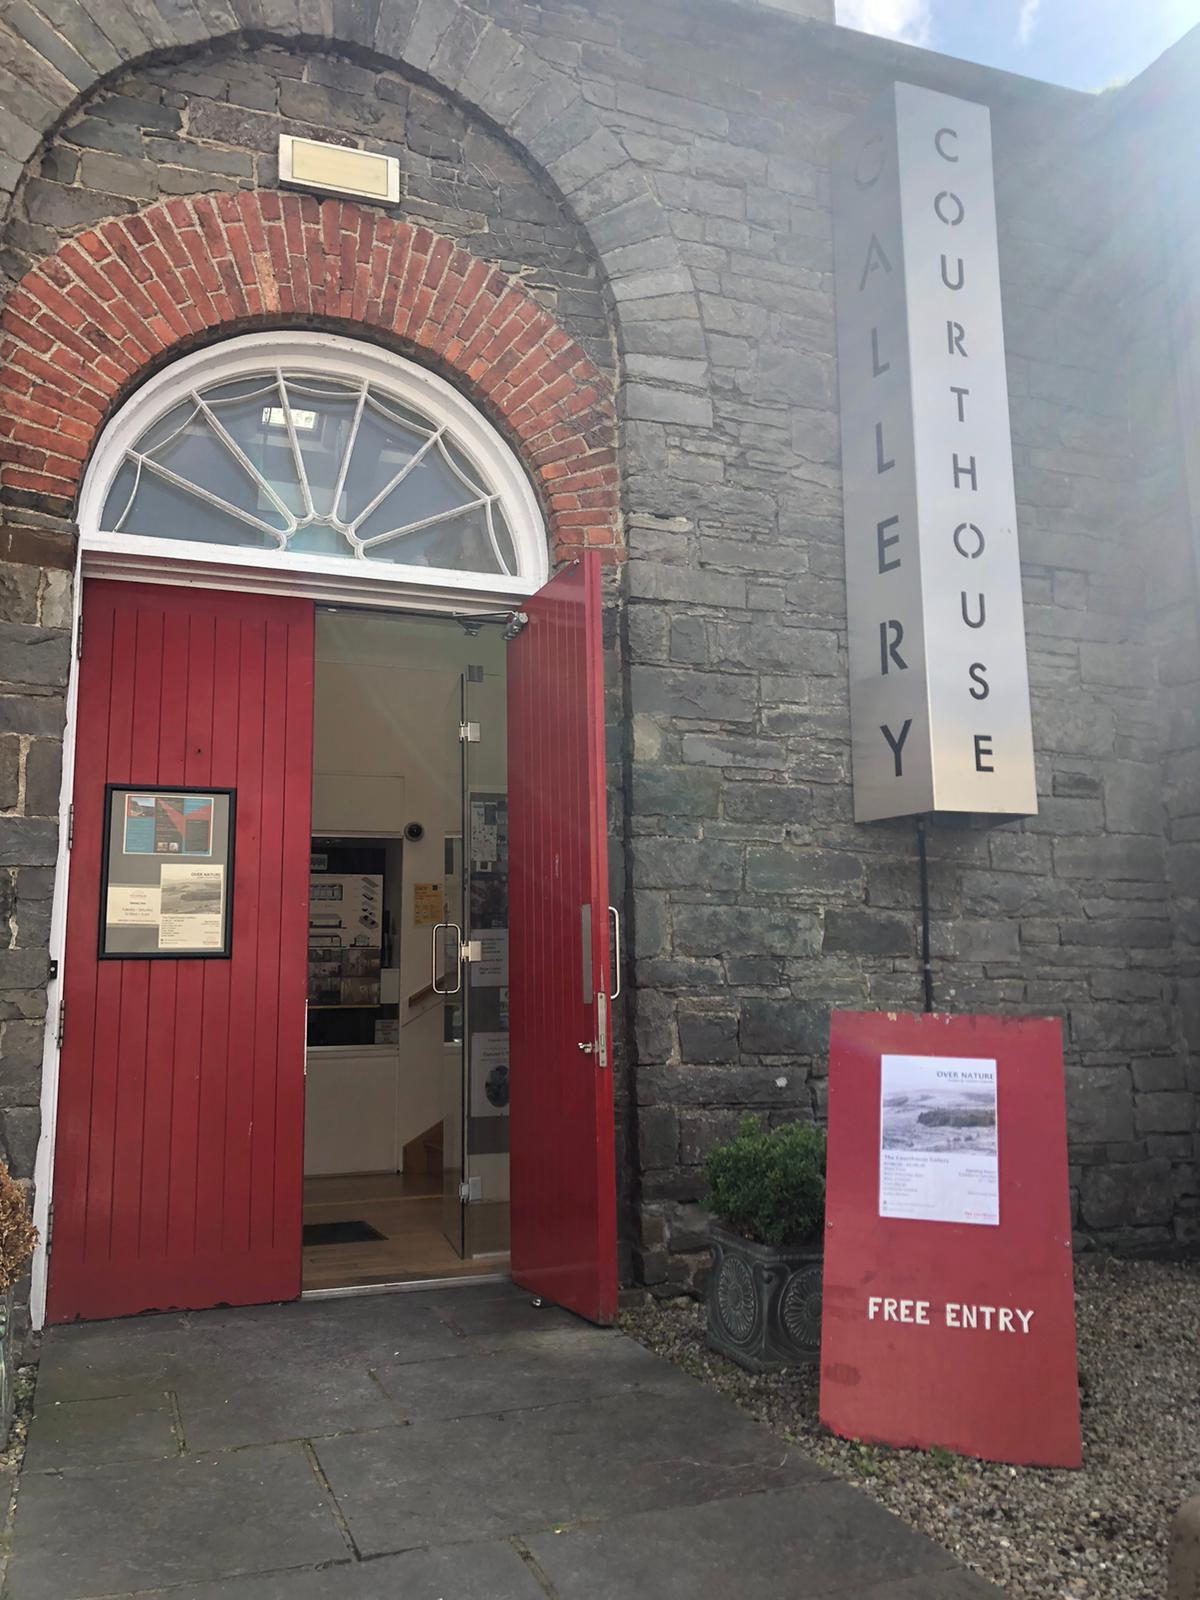 Photograph of the front door of the Courthouse Gallery, Ennistymon, during the exhibition Over Nature